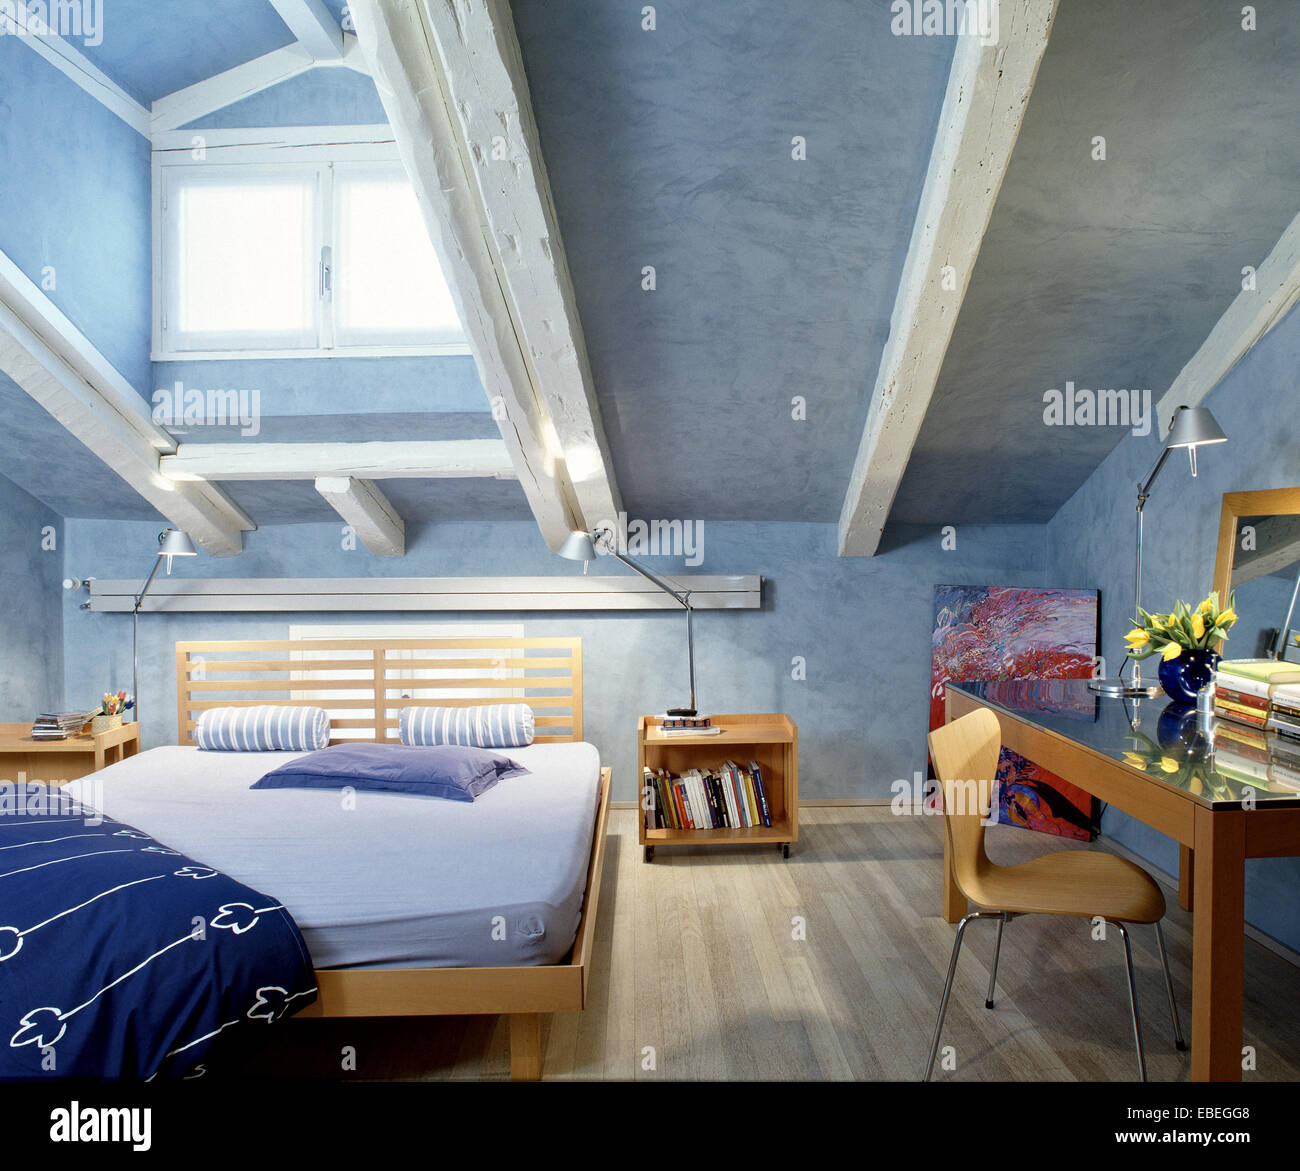 interior view of a modern bedroom in the attic room with wood floor